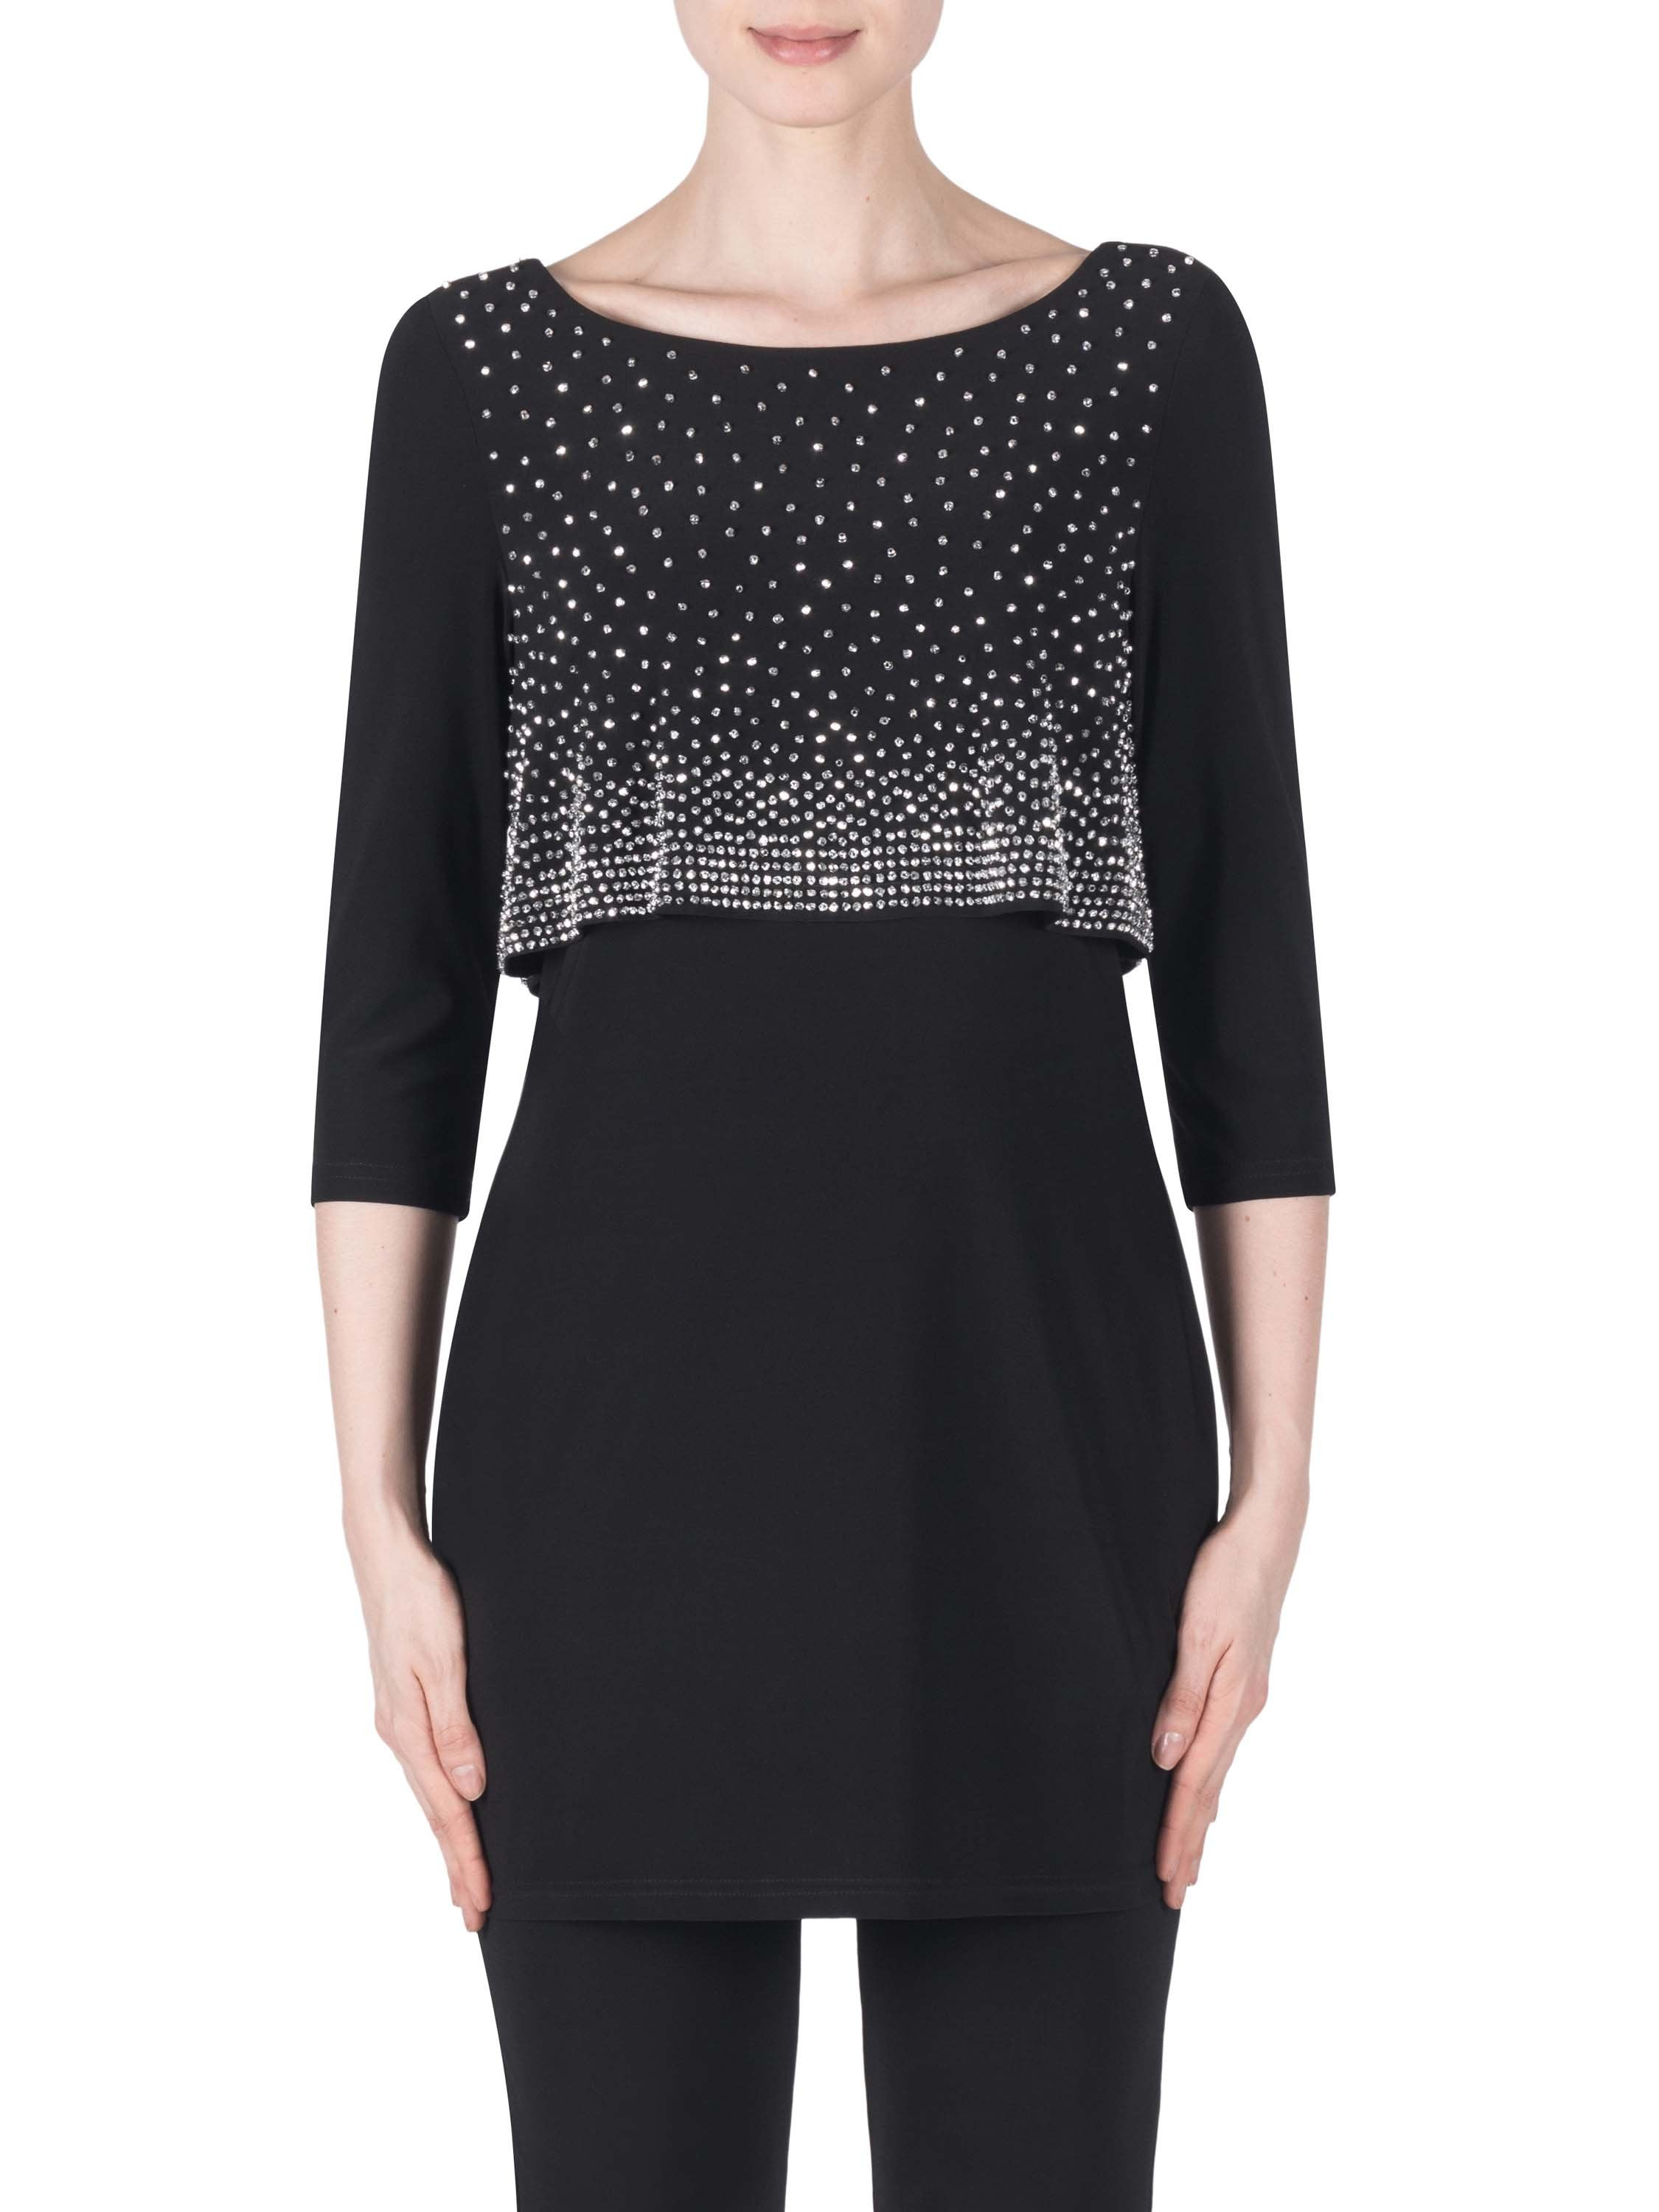 Joseph Ribkoff Black Tunic With Diamante Studded Bodice